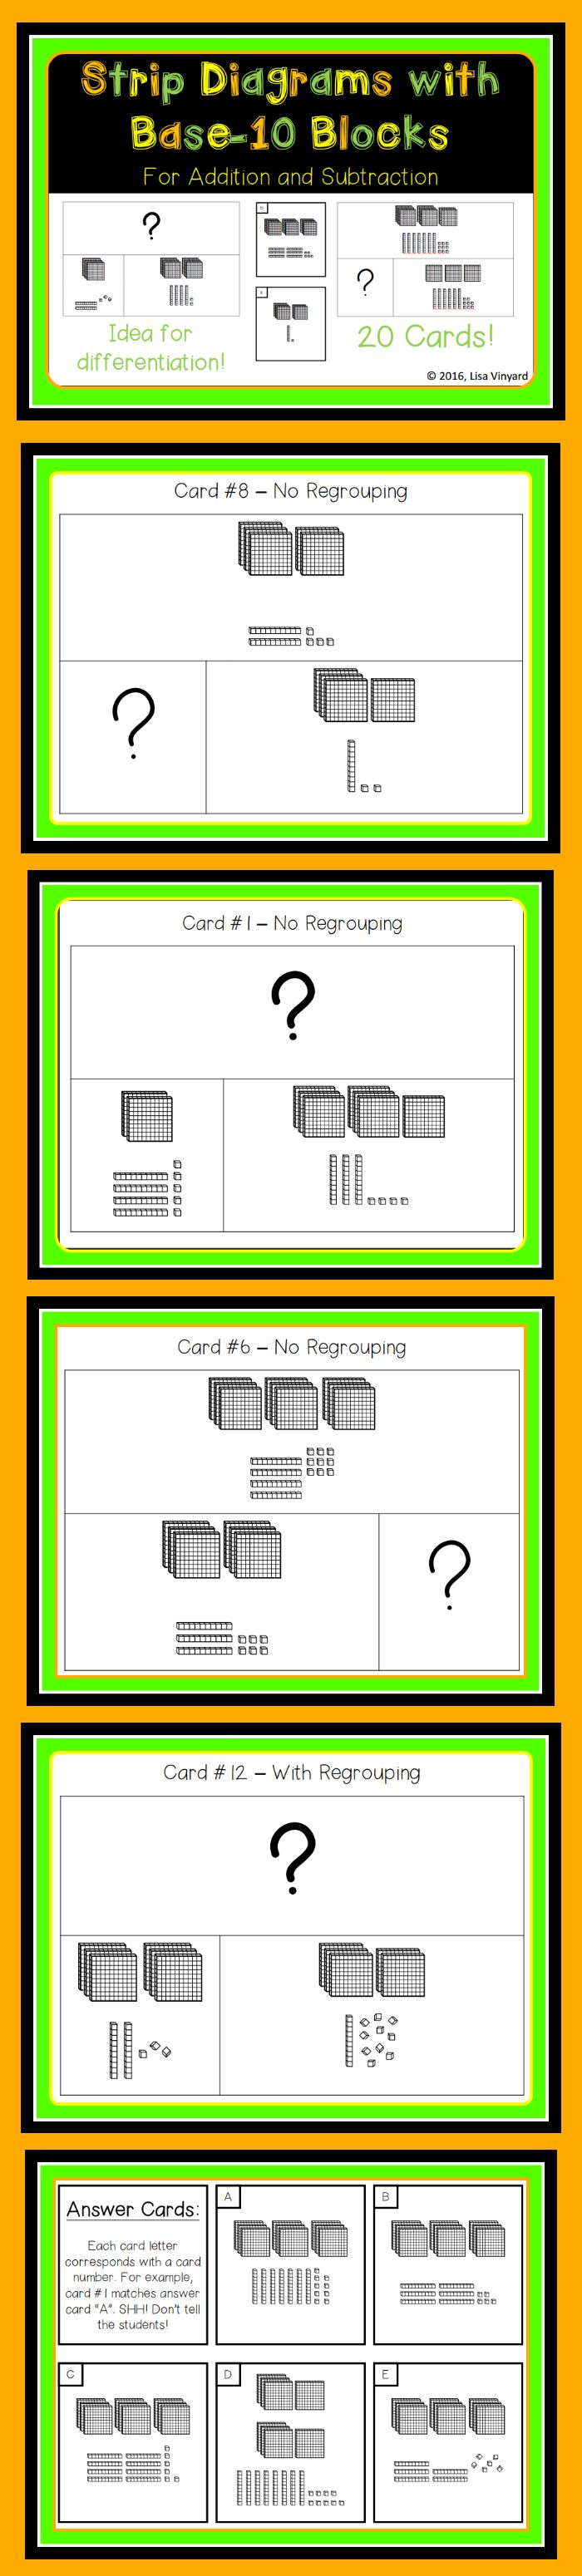 54 best cool beans ed images on pinterest beans calculus and math 2nd grade strip diagrams with base 10 blocks fandeluxe Image collections